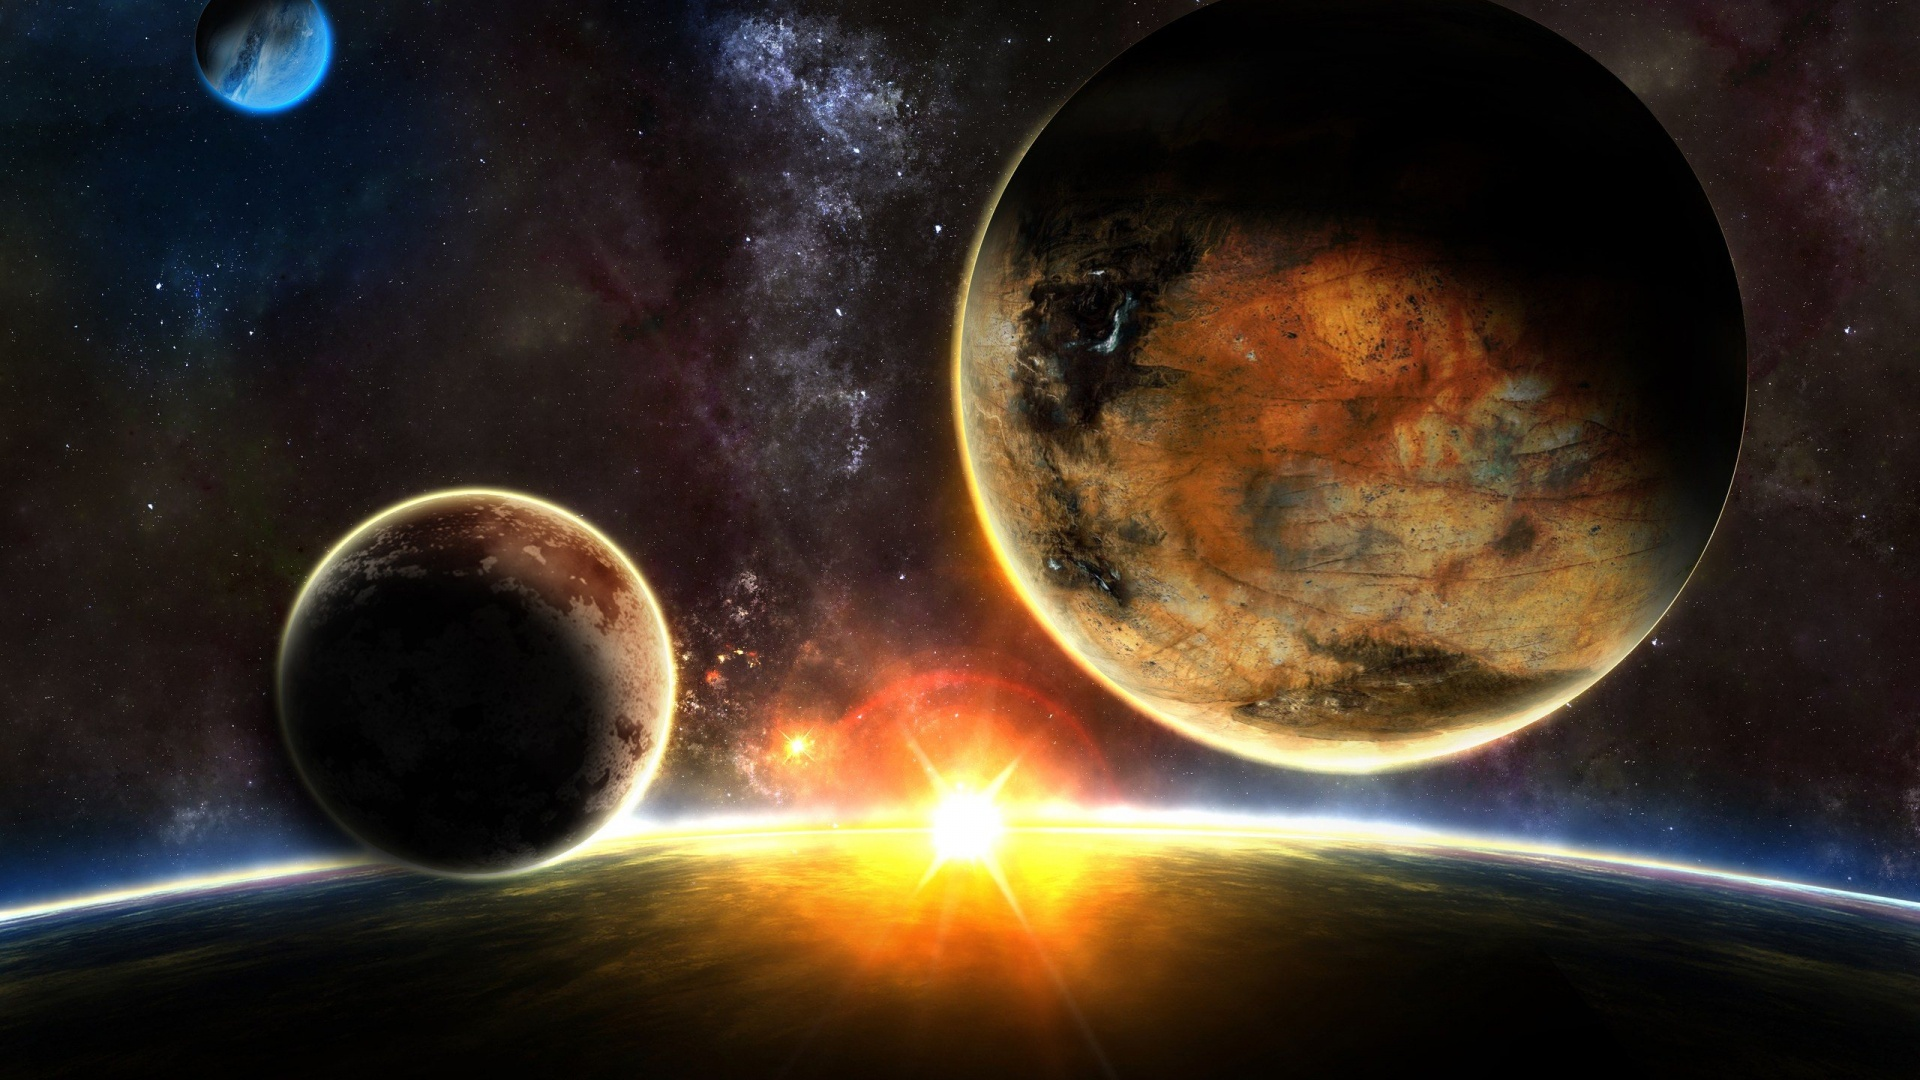 Bhakti Wallpaper 3d Hd Download Earth From Space 1920 X 1080 Nasa Page 3 Pics About Space